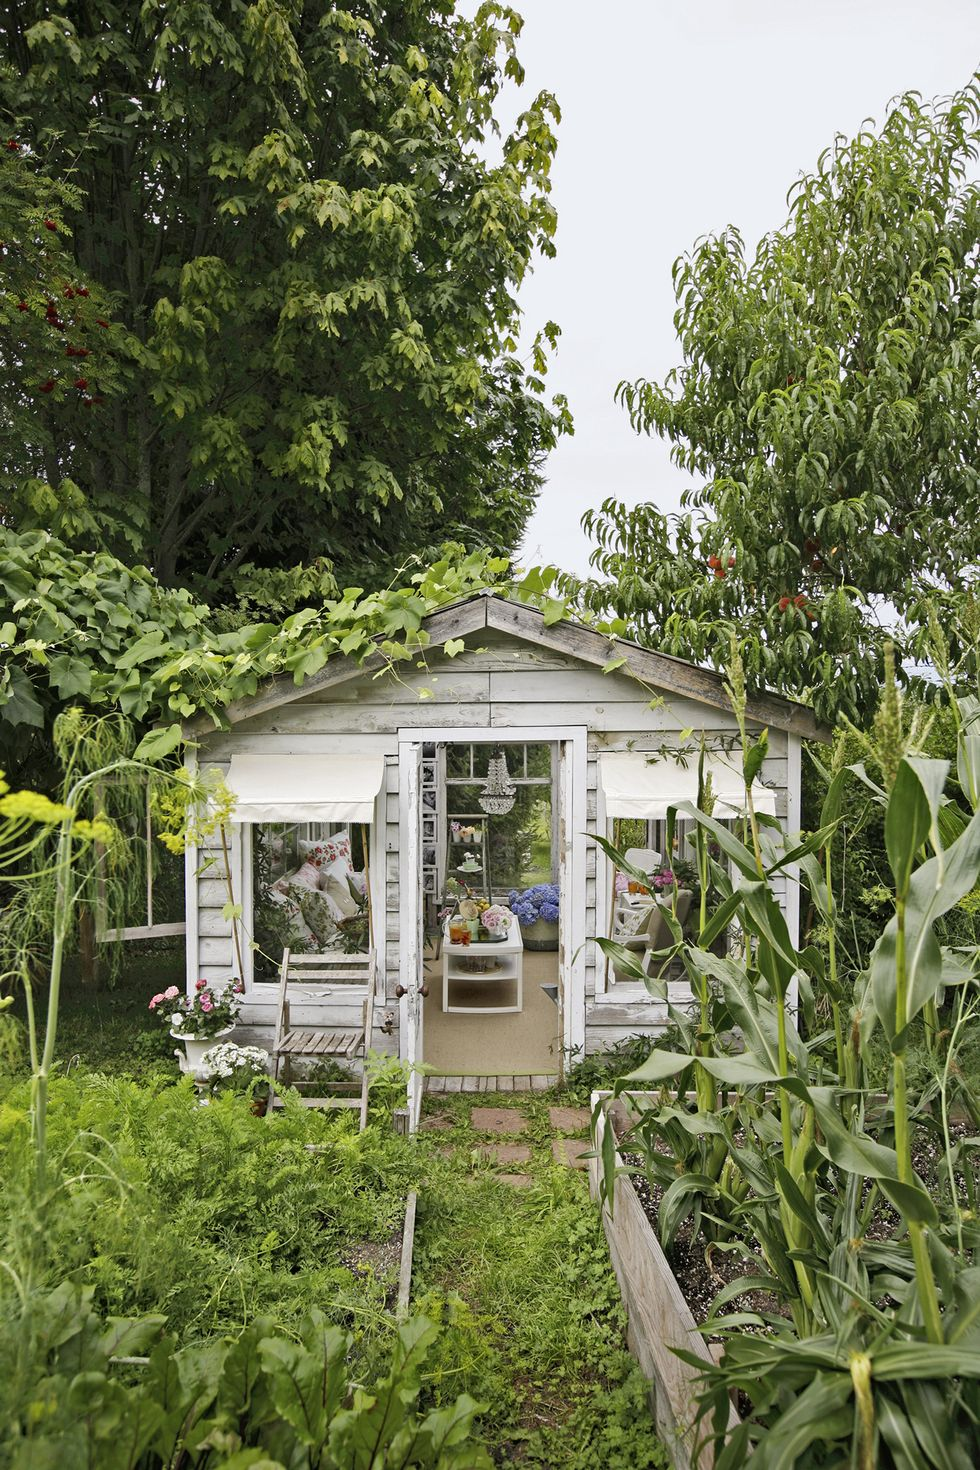 Charming vintage she shed greenhouse exterior has a glass roof, original wood, and a breathtaking shabby chic interior! #sheshed #sheds #greenhouse #outdooroasis #gardenshed #pottingshed